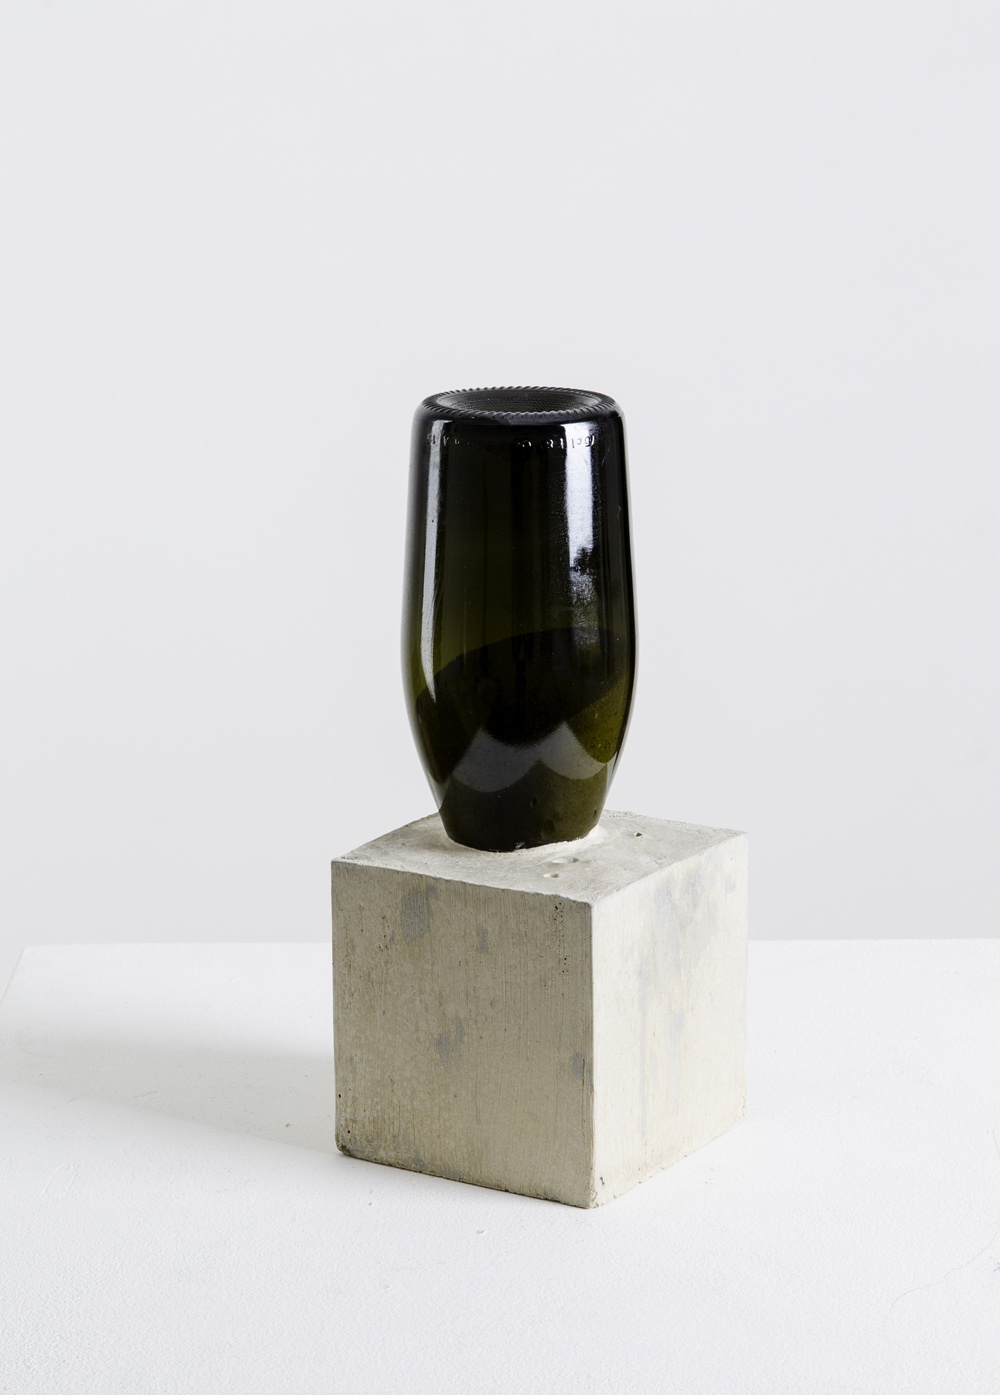 Alexandre da Cunha,  1622101115 , 2015, Sand, bottle, concrete, 29.7 x 13 cm, Courtesy the artist and Thomas Dane Gallery, London